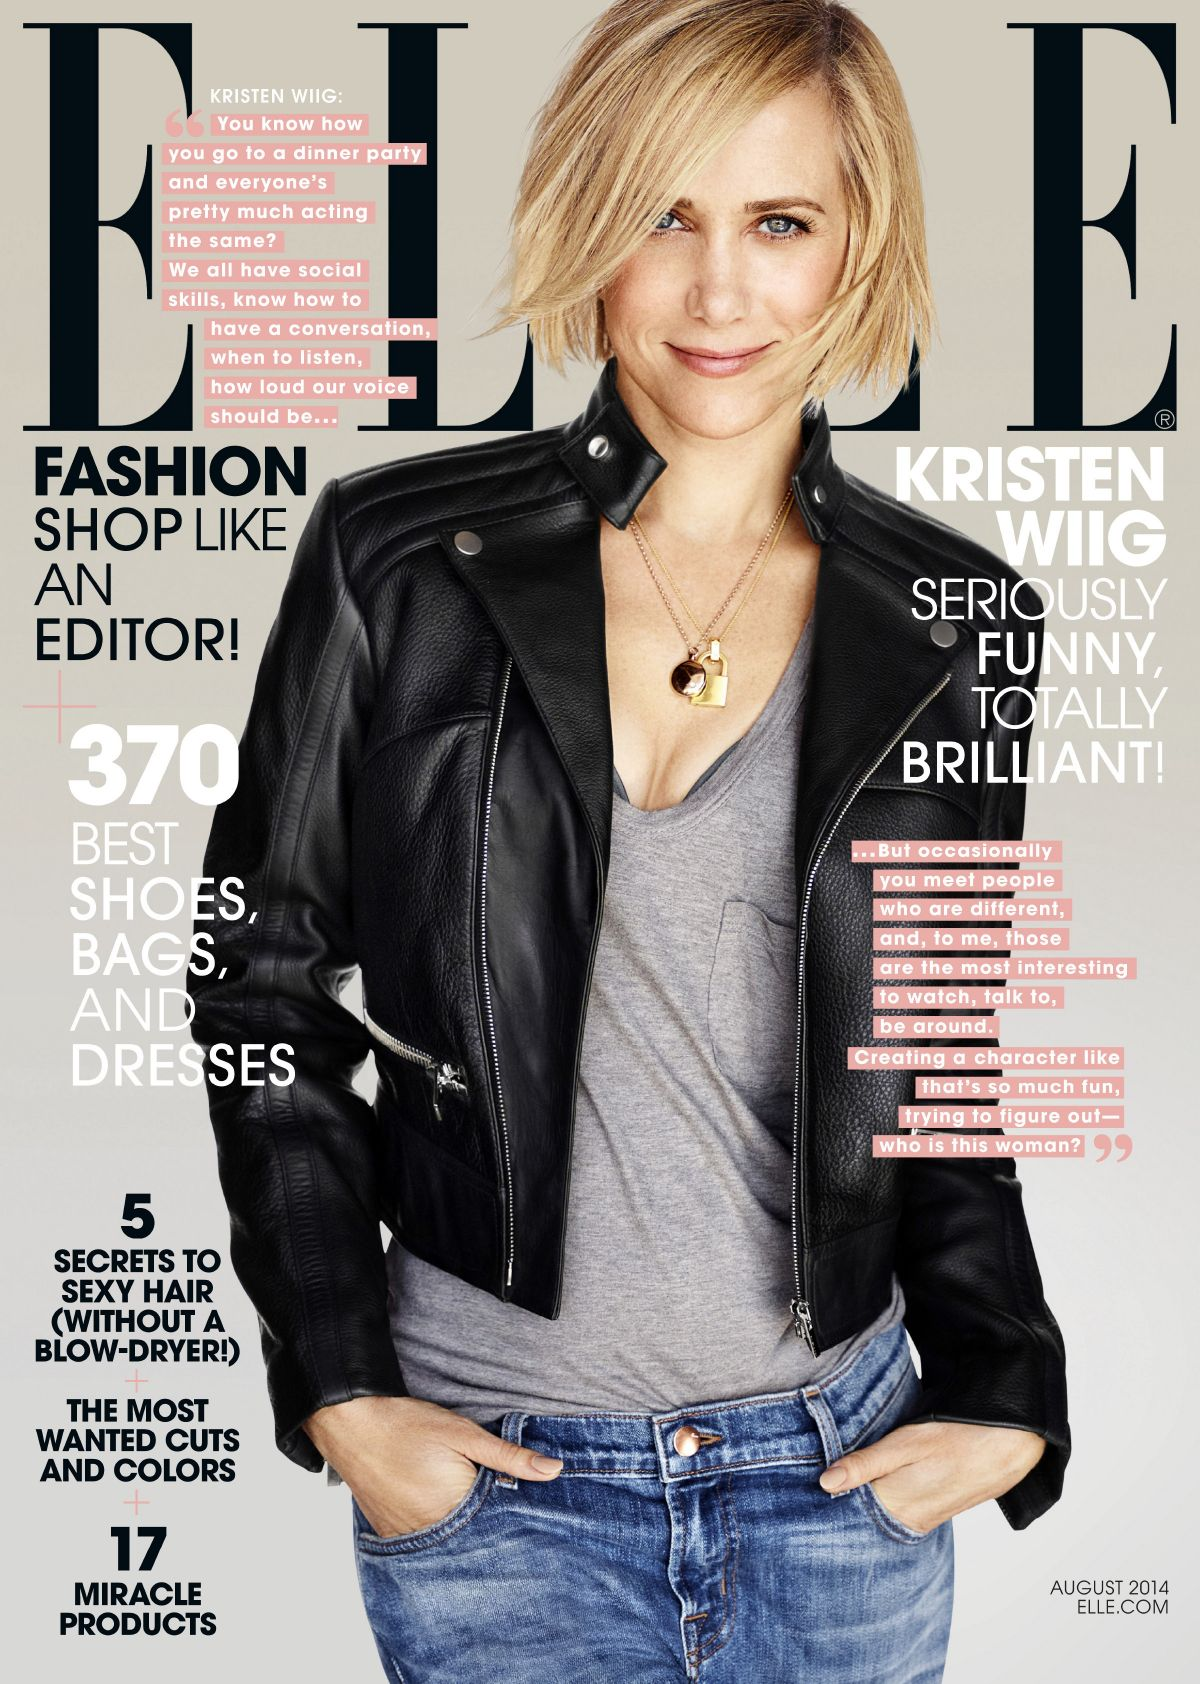 KRITEN WIIG on the Cover of Elle Magazine, August 2014 Issue